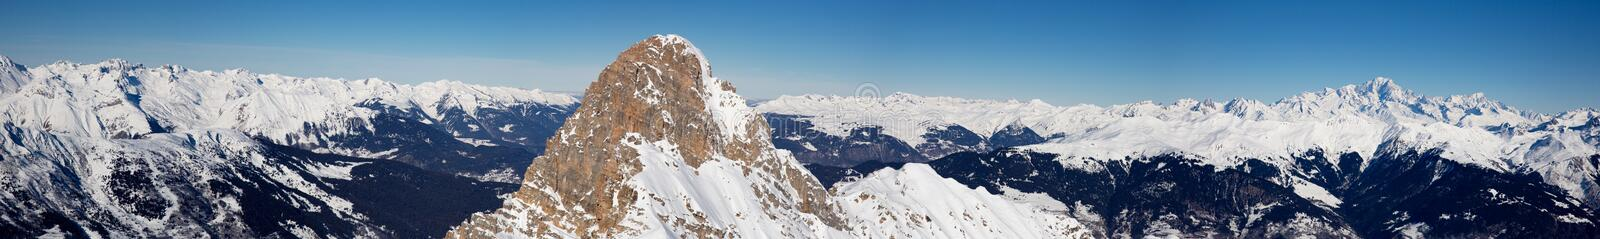 Beautiful alpine panoramic view snow capped mountains. Winter mountain scenery stock photography